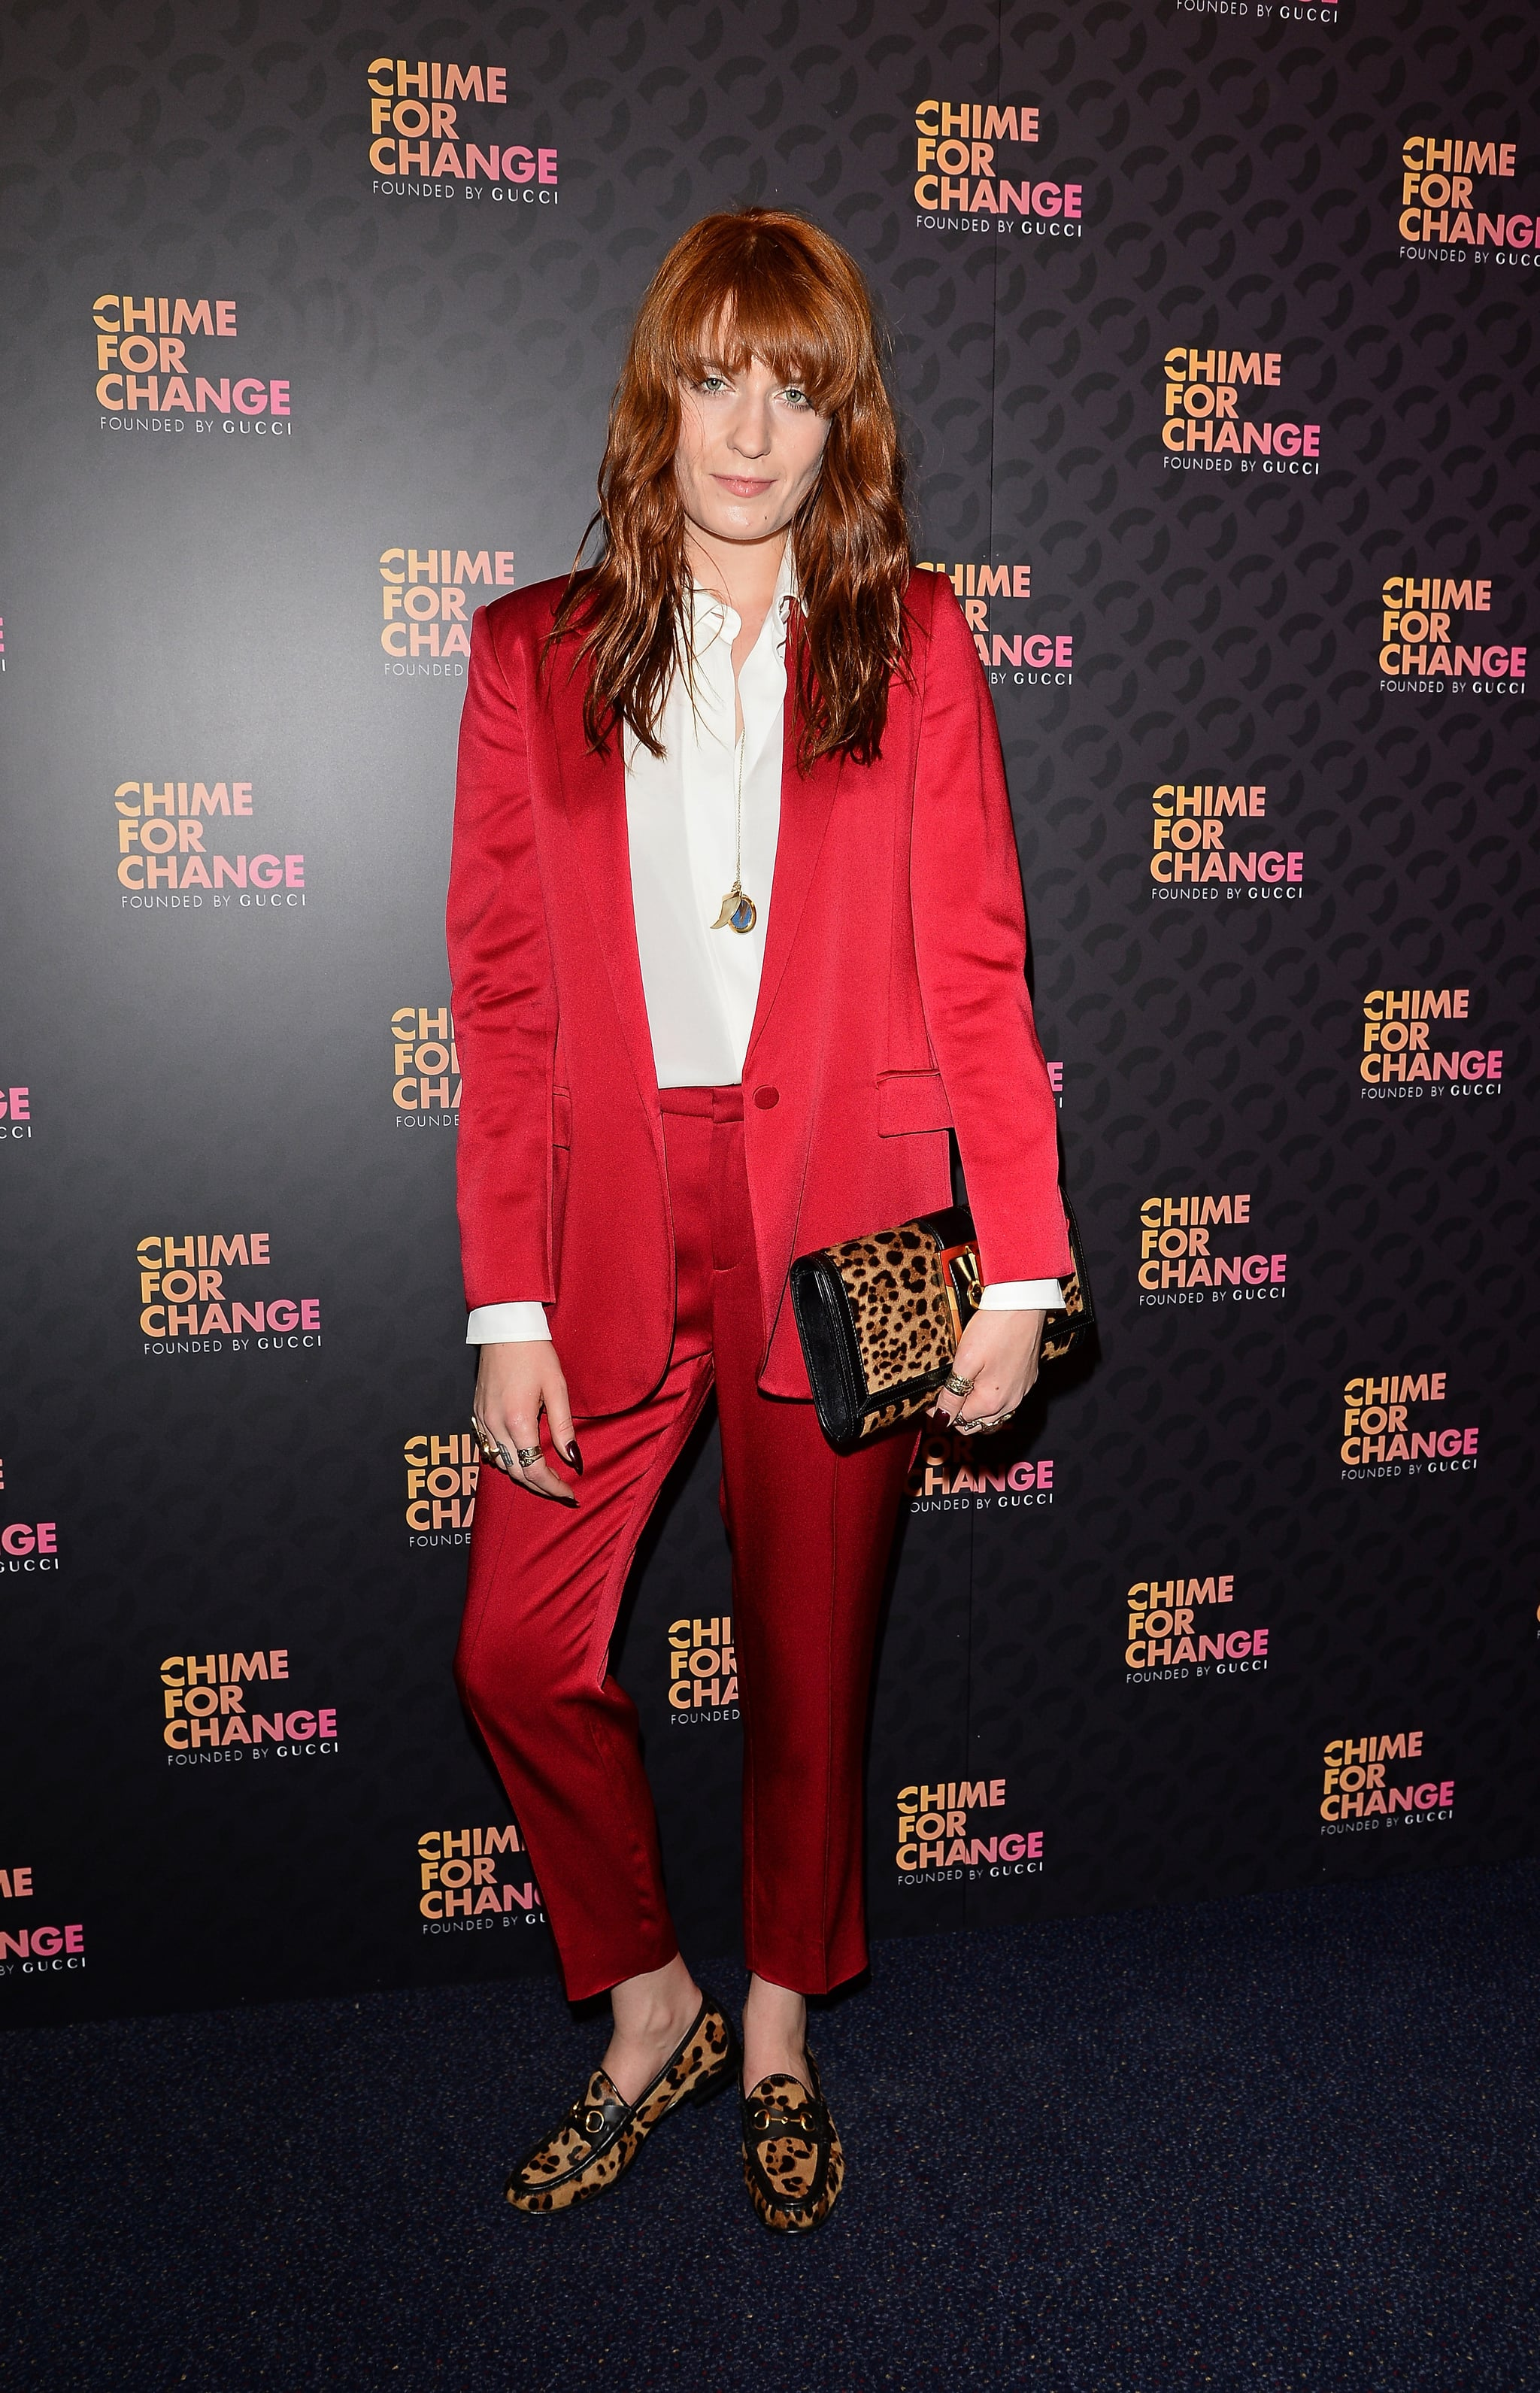 Florence Welch at the Chime For Change: The Sound of Change Live concert afterparty, presented by Gucci, in London.